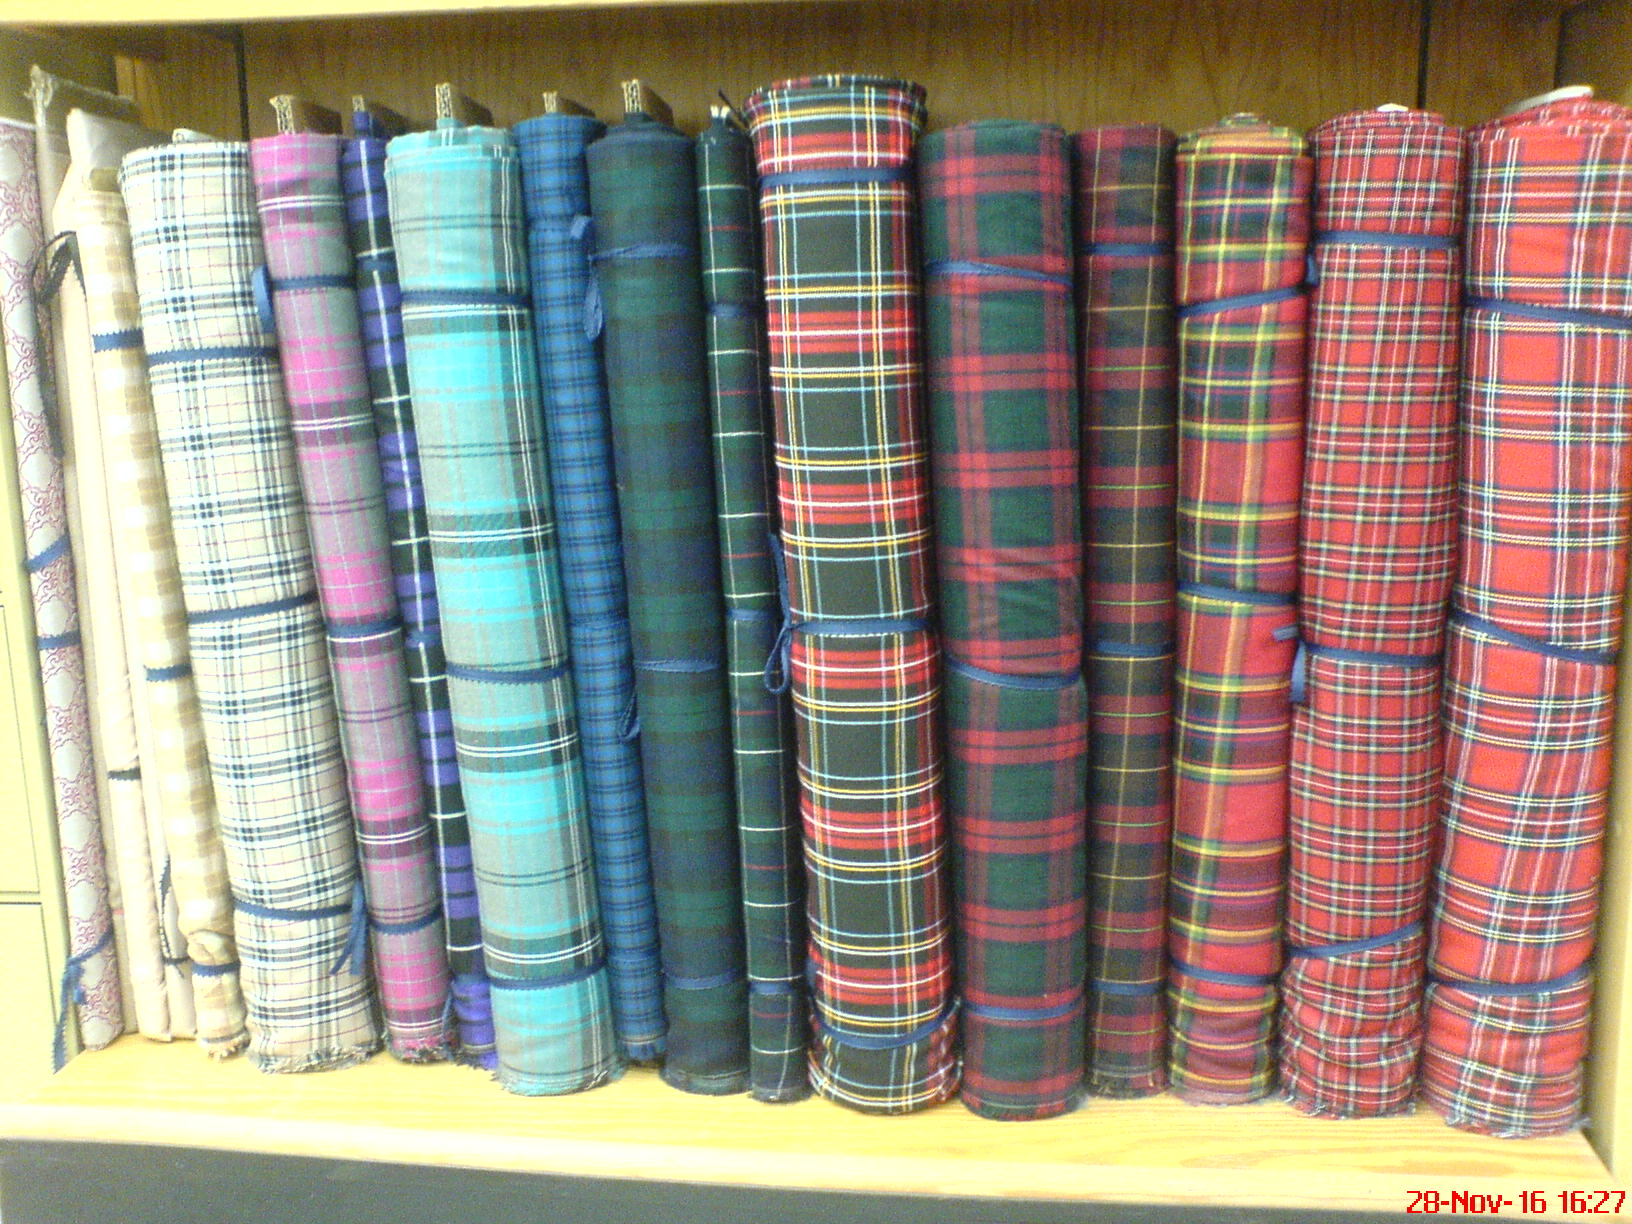 Material with a tartan pattern